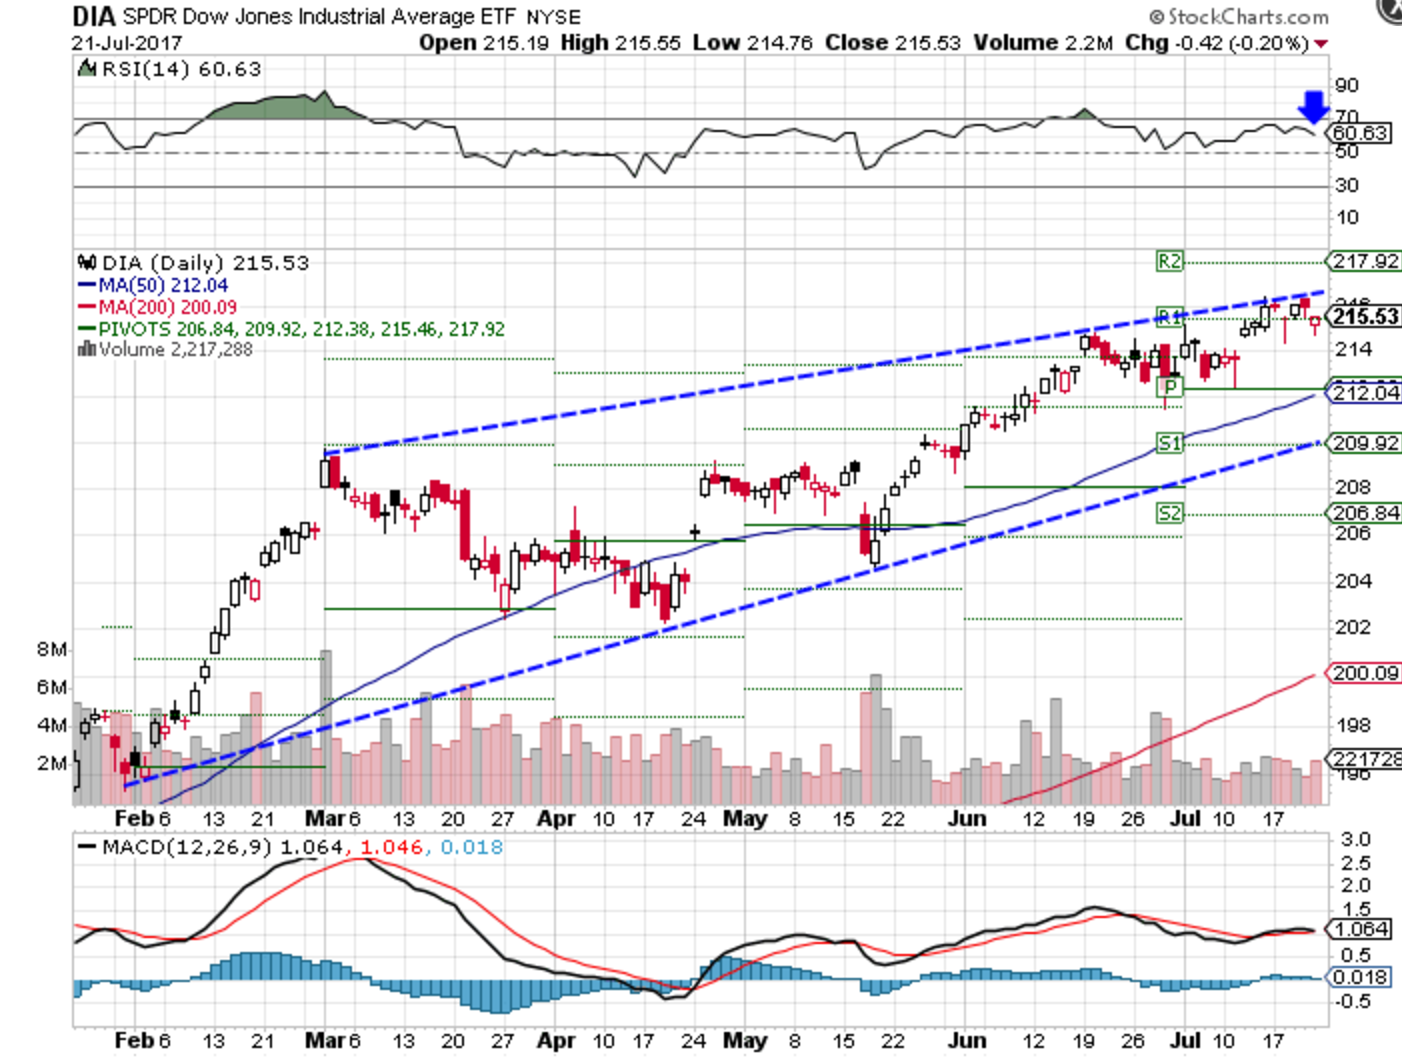 Technical chart showing the performance of the SPDR Dow Jones Industrial Average ETF (DIA)